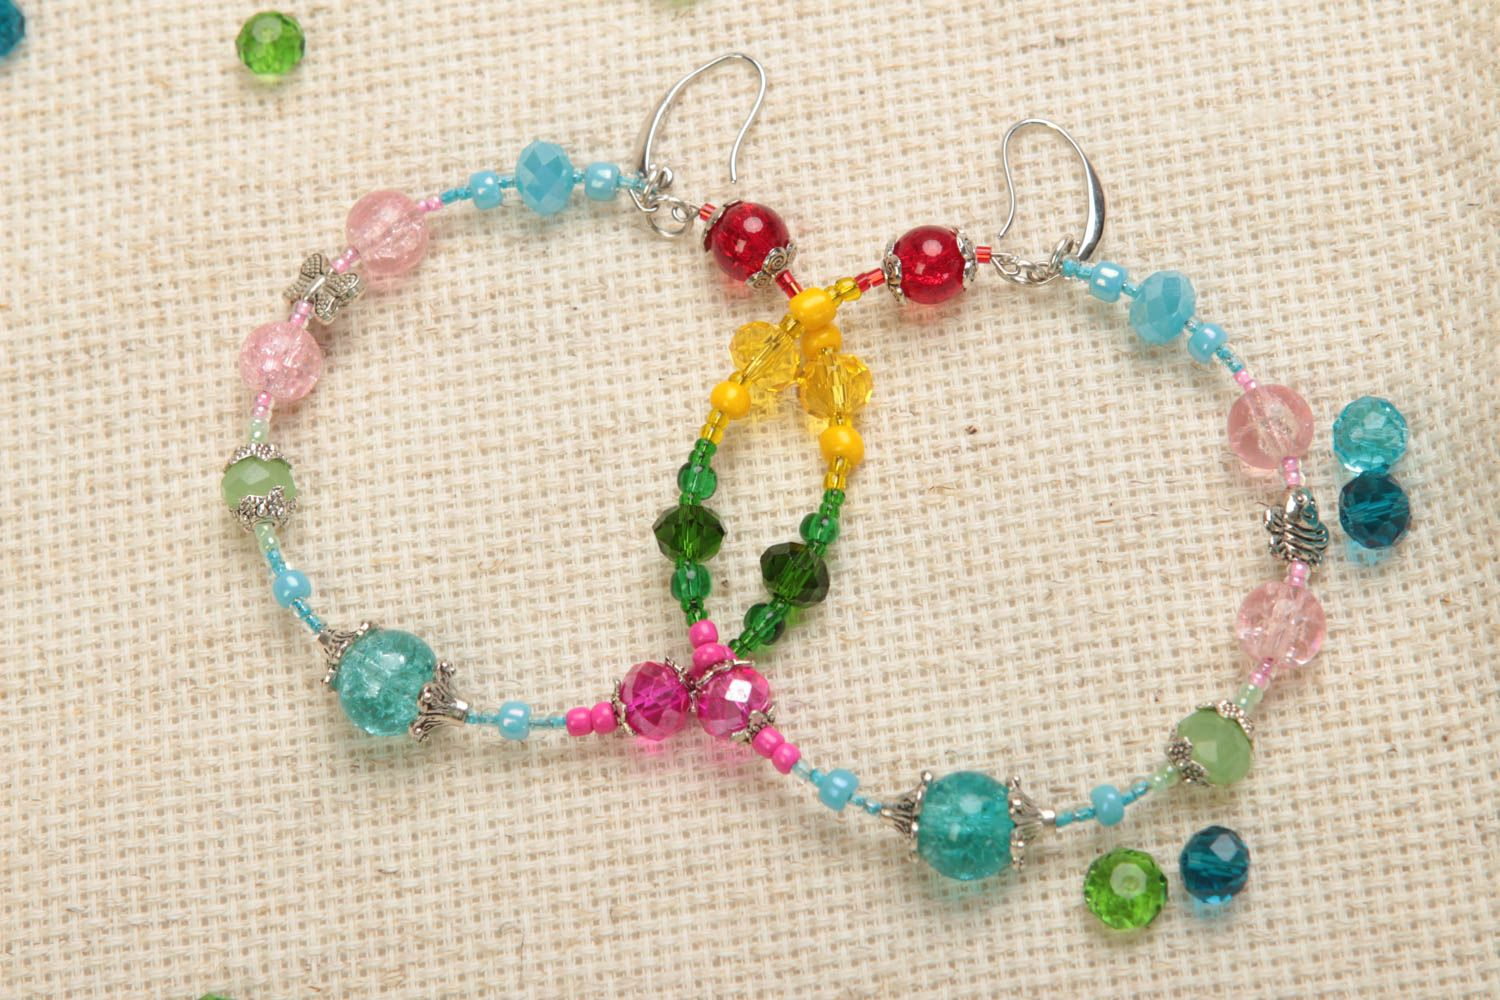 Colorful stylish handmade metal hoop earrings fashion accessories gifts for her photo 1